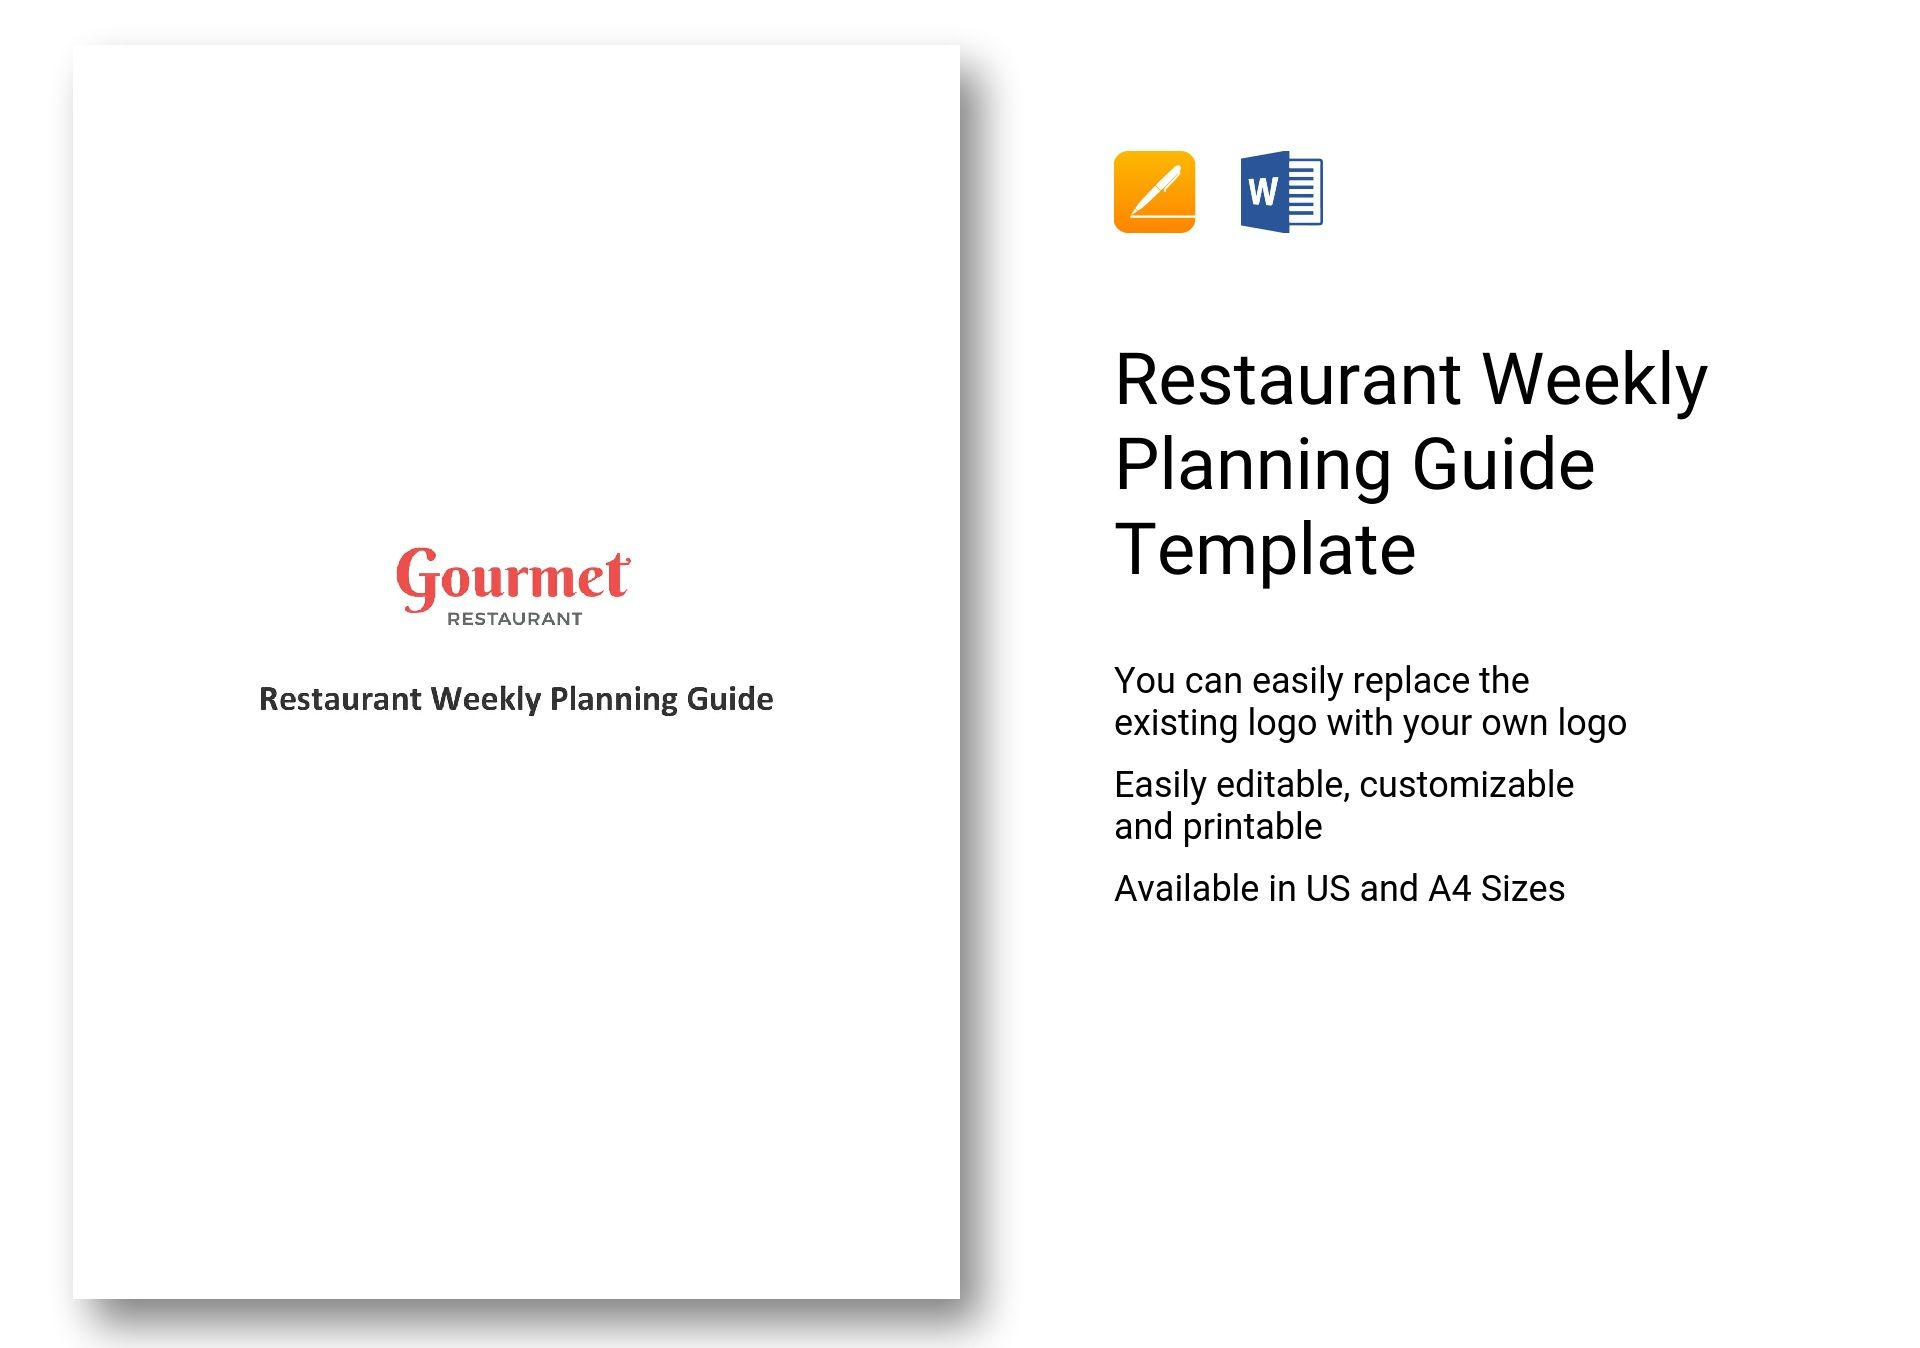 Restaurant Weekly Planning Guide